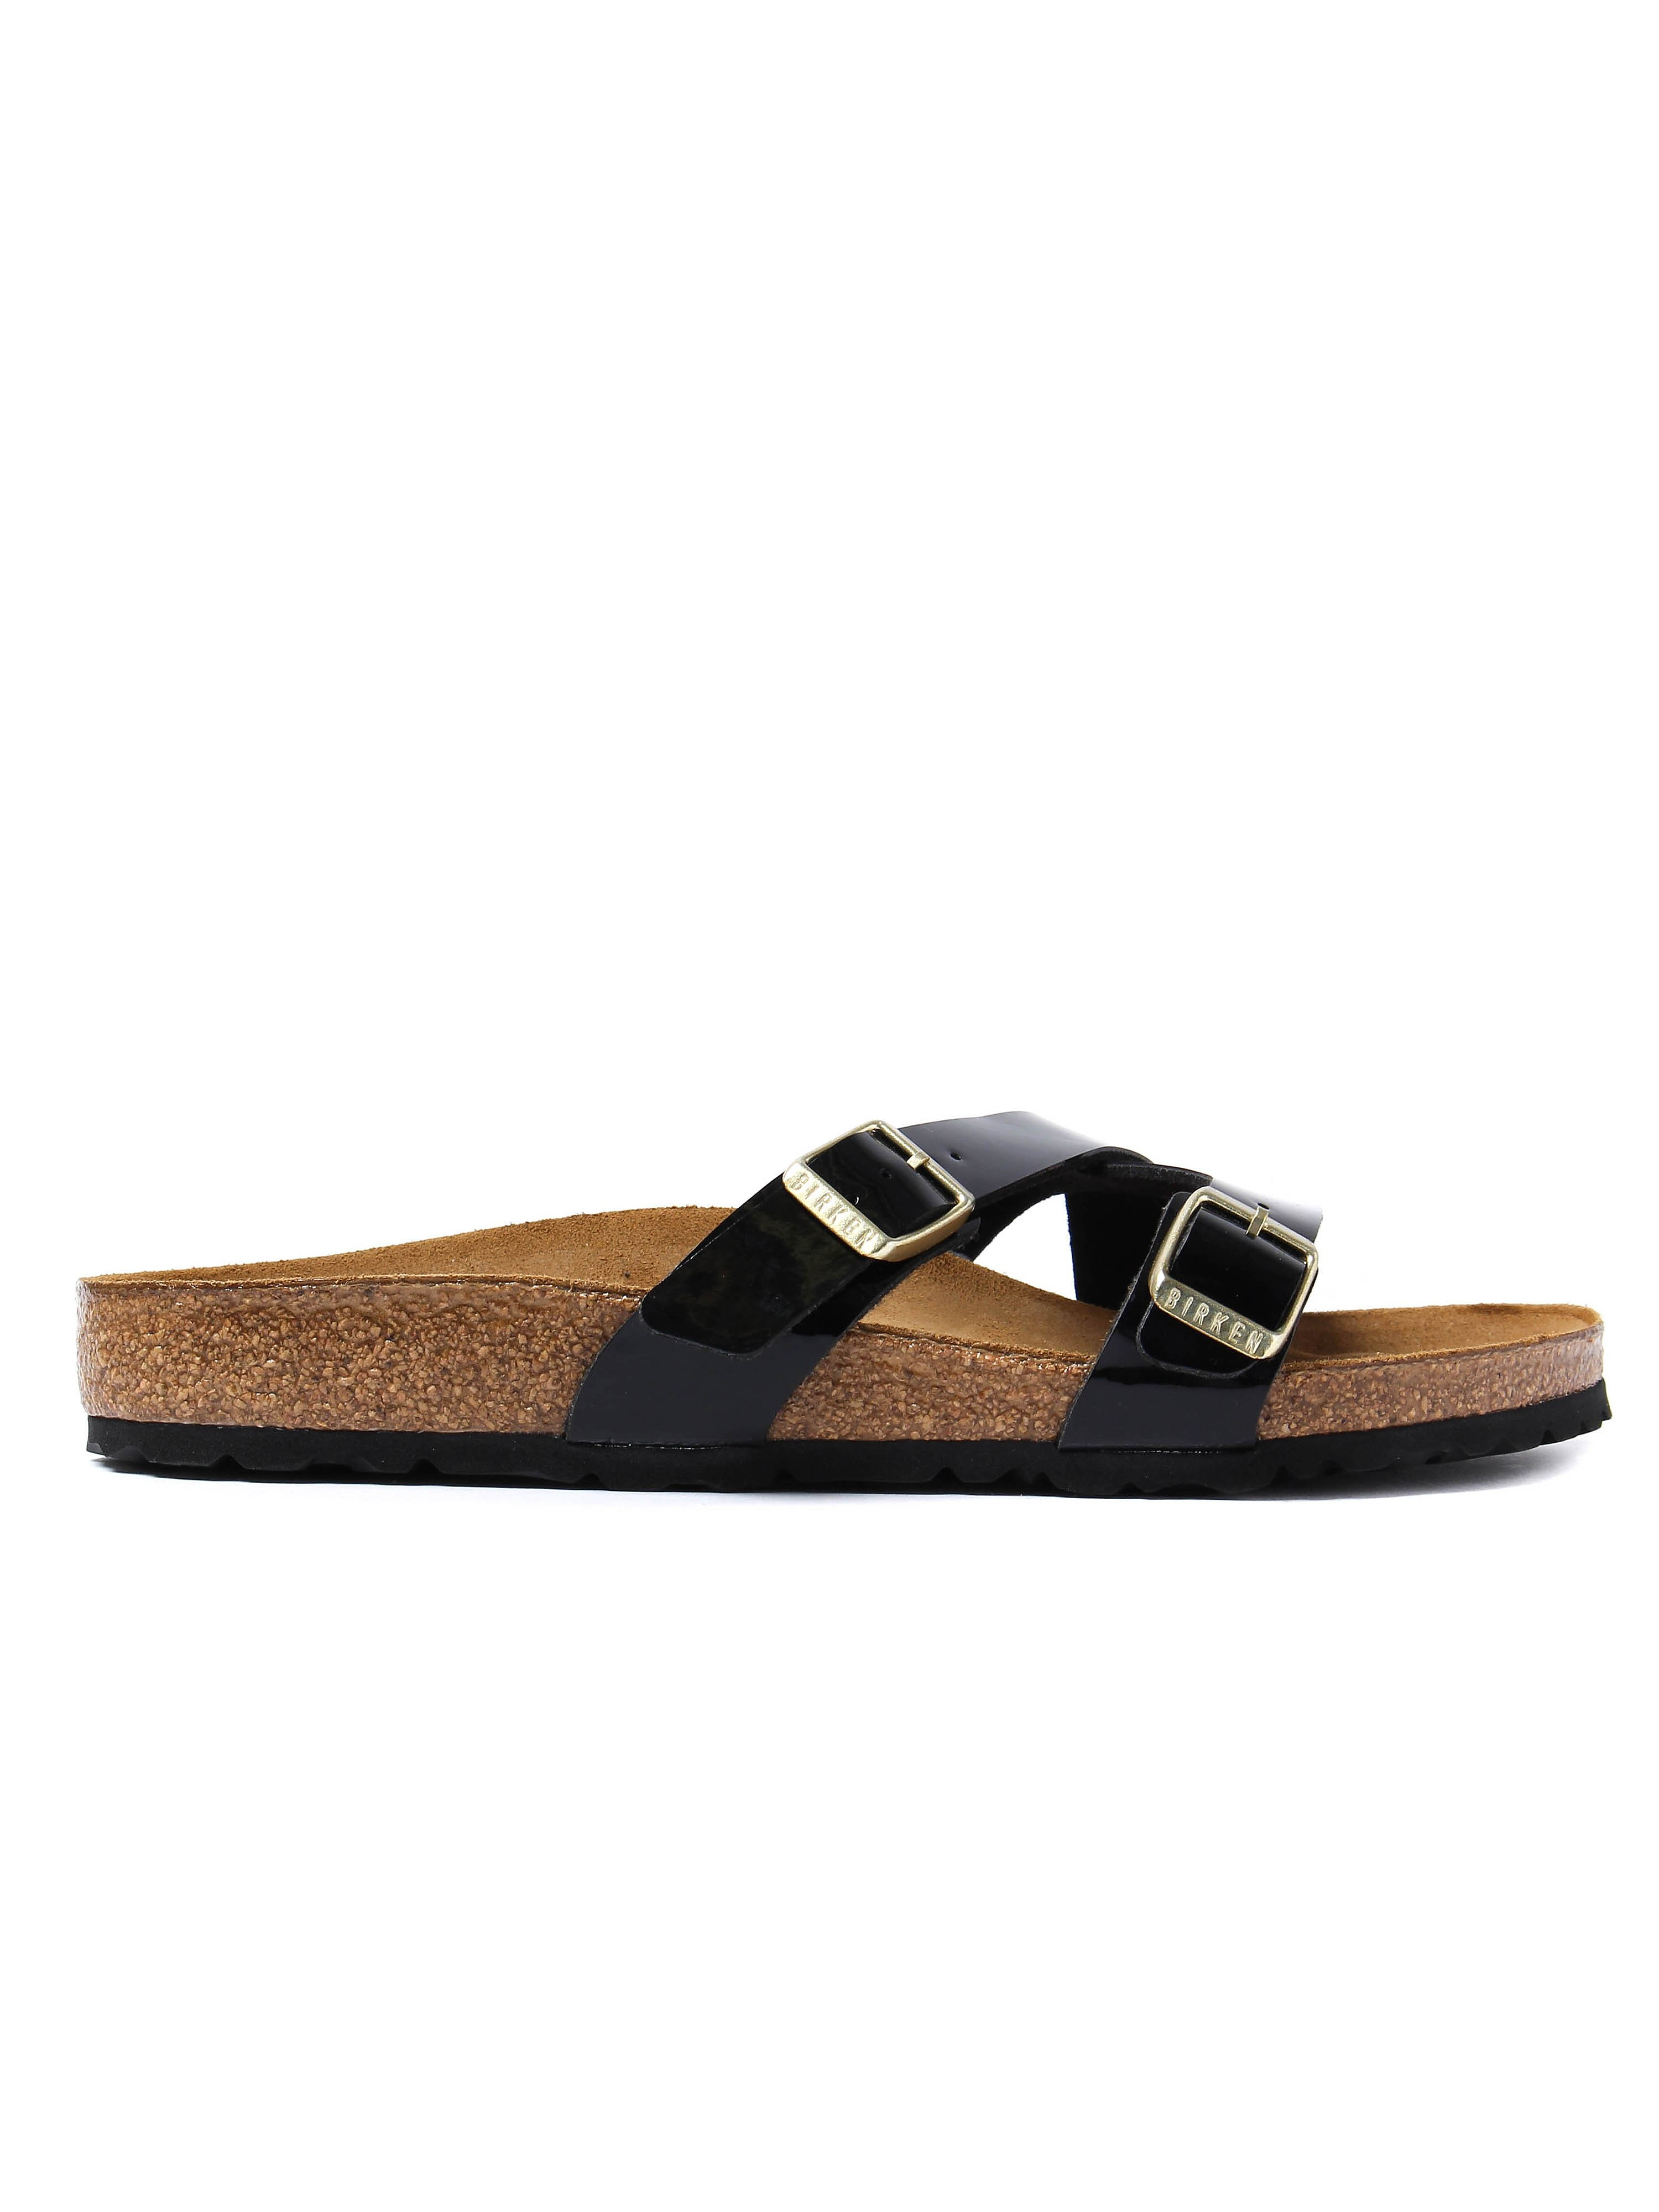 Birkenstock Women's Yao Balance Regular Fit Sandals - Black Patent Leather